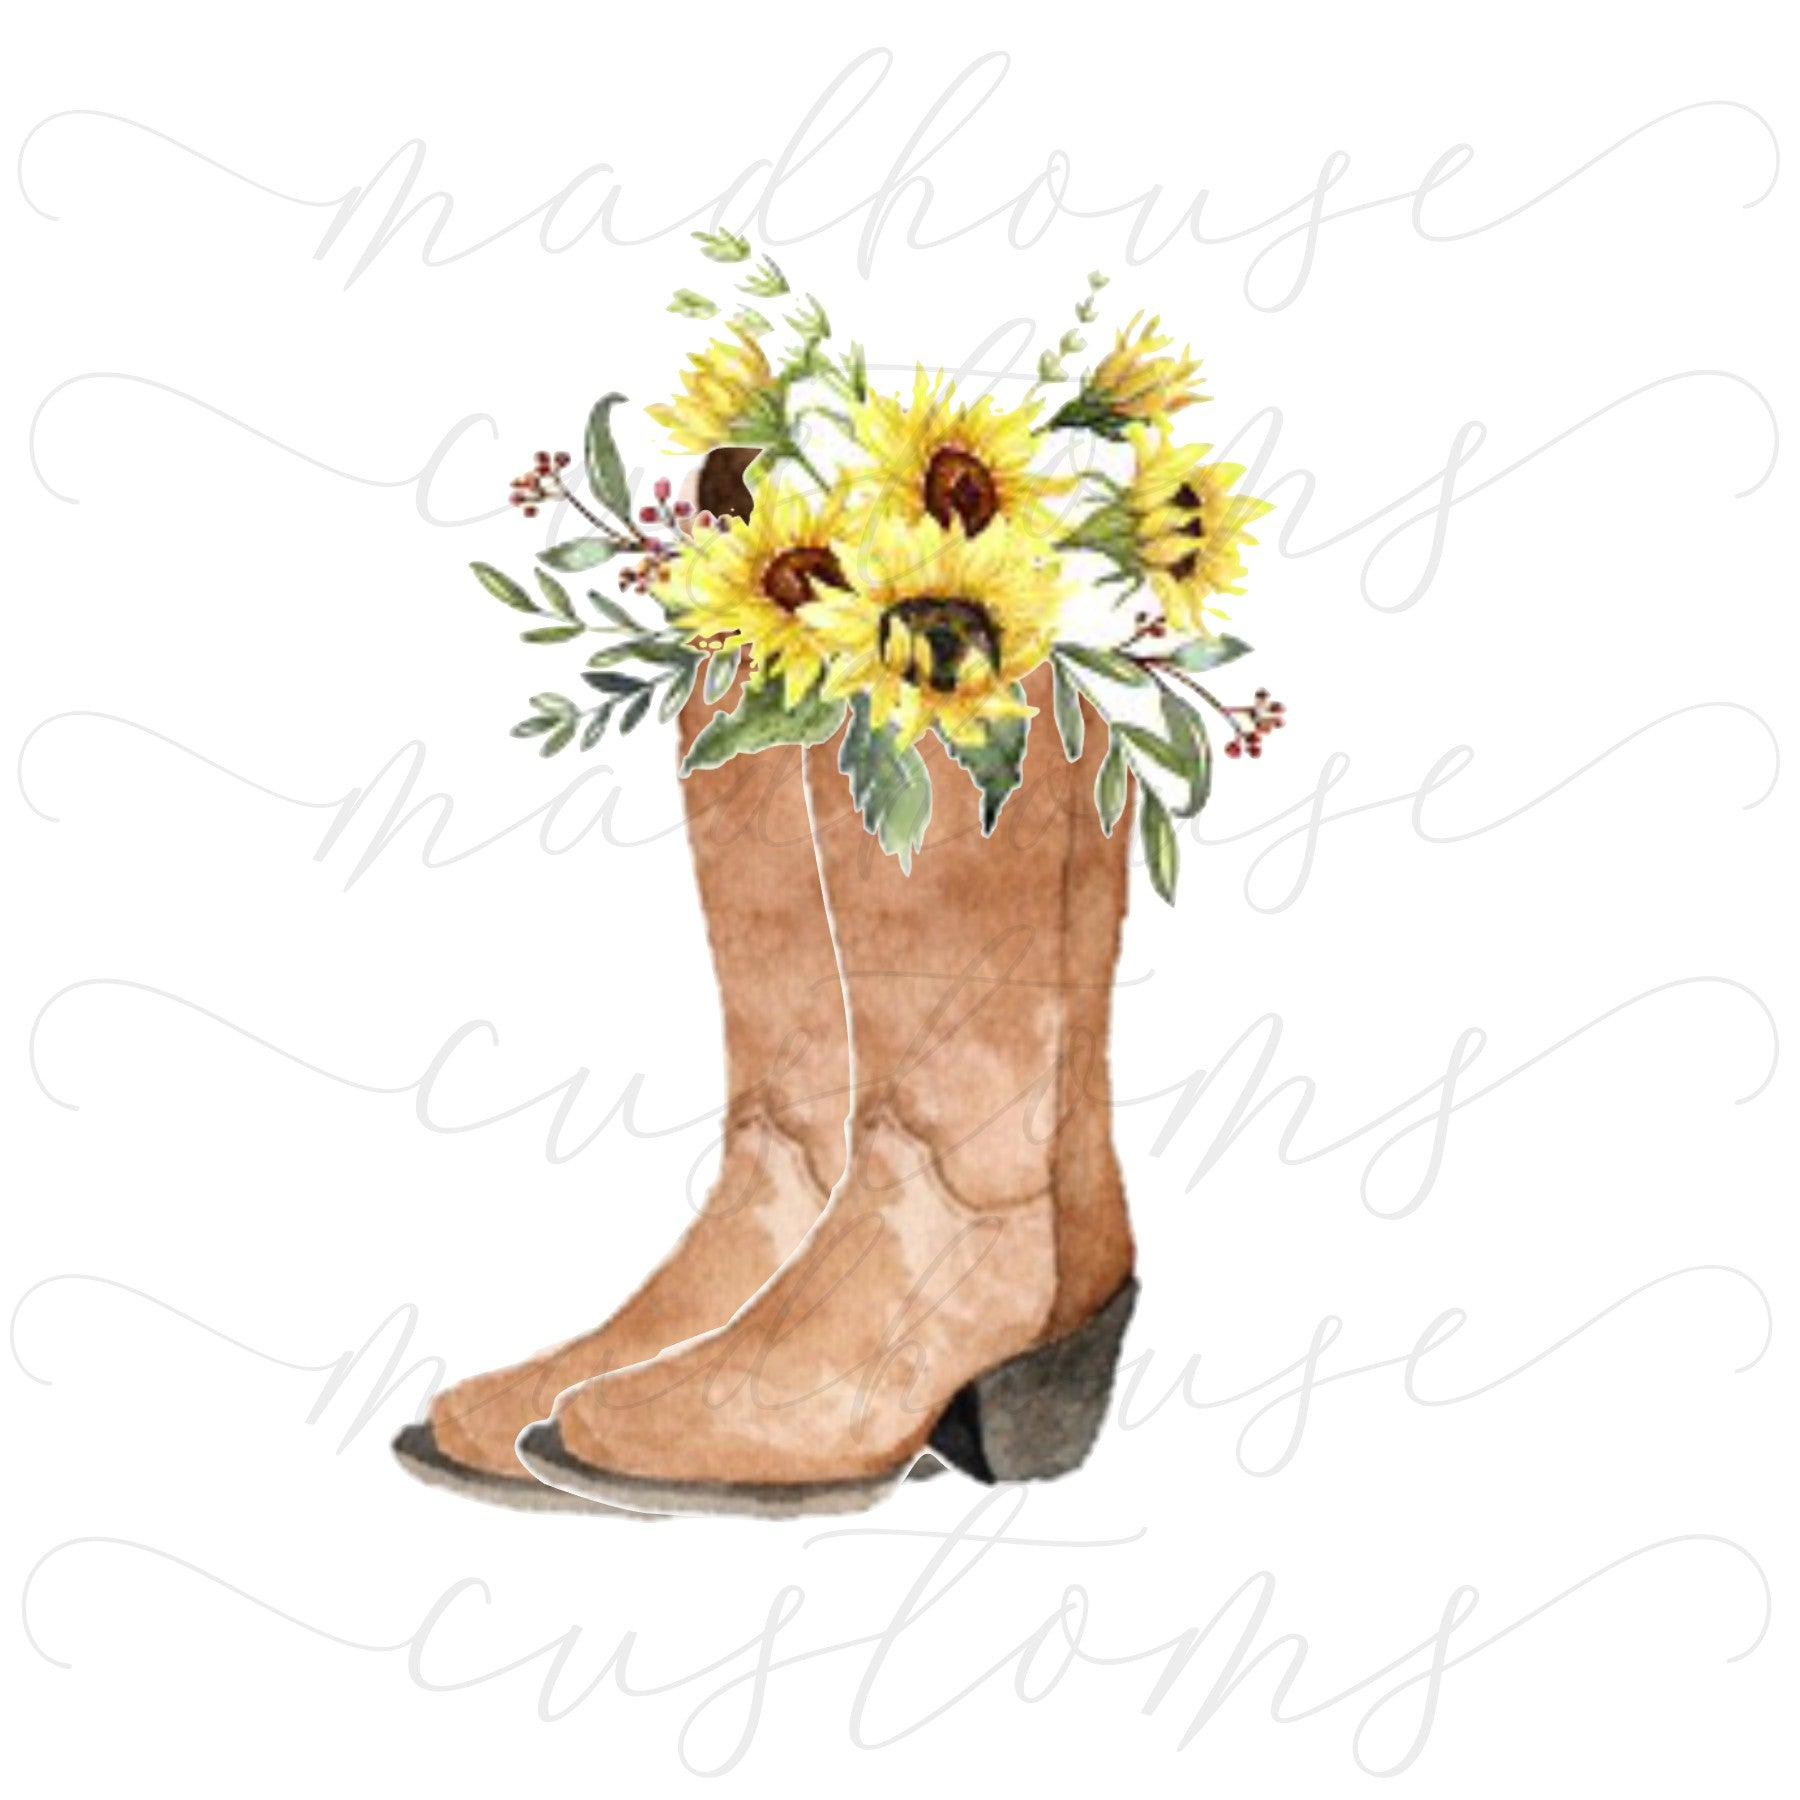 Boots & Sunflowers #1